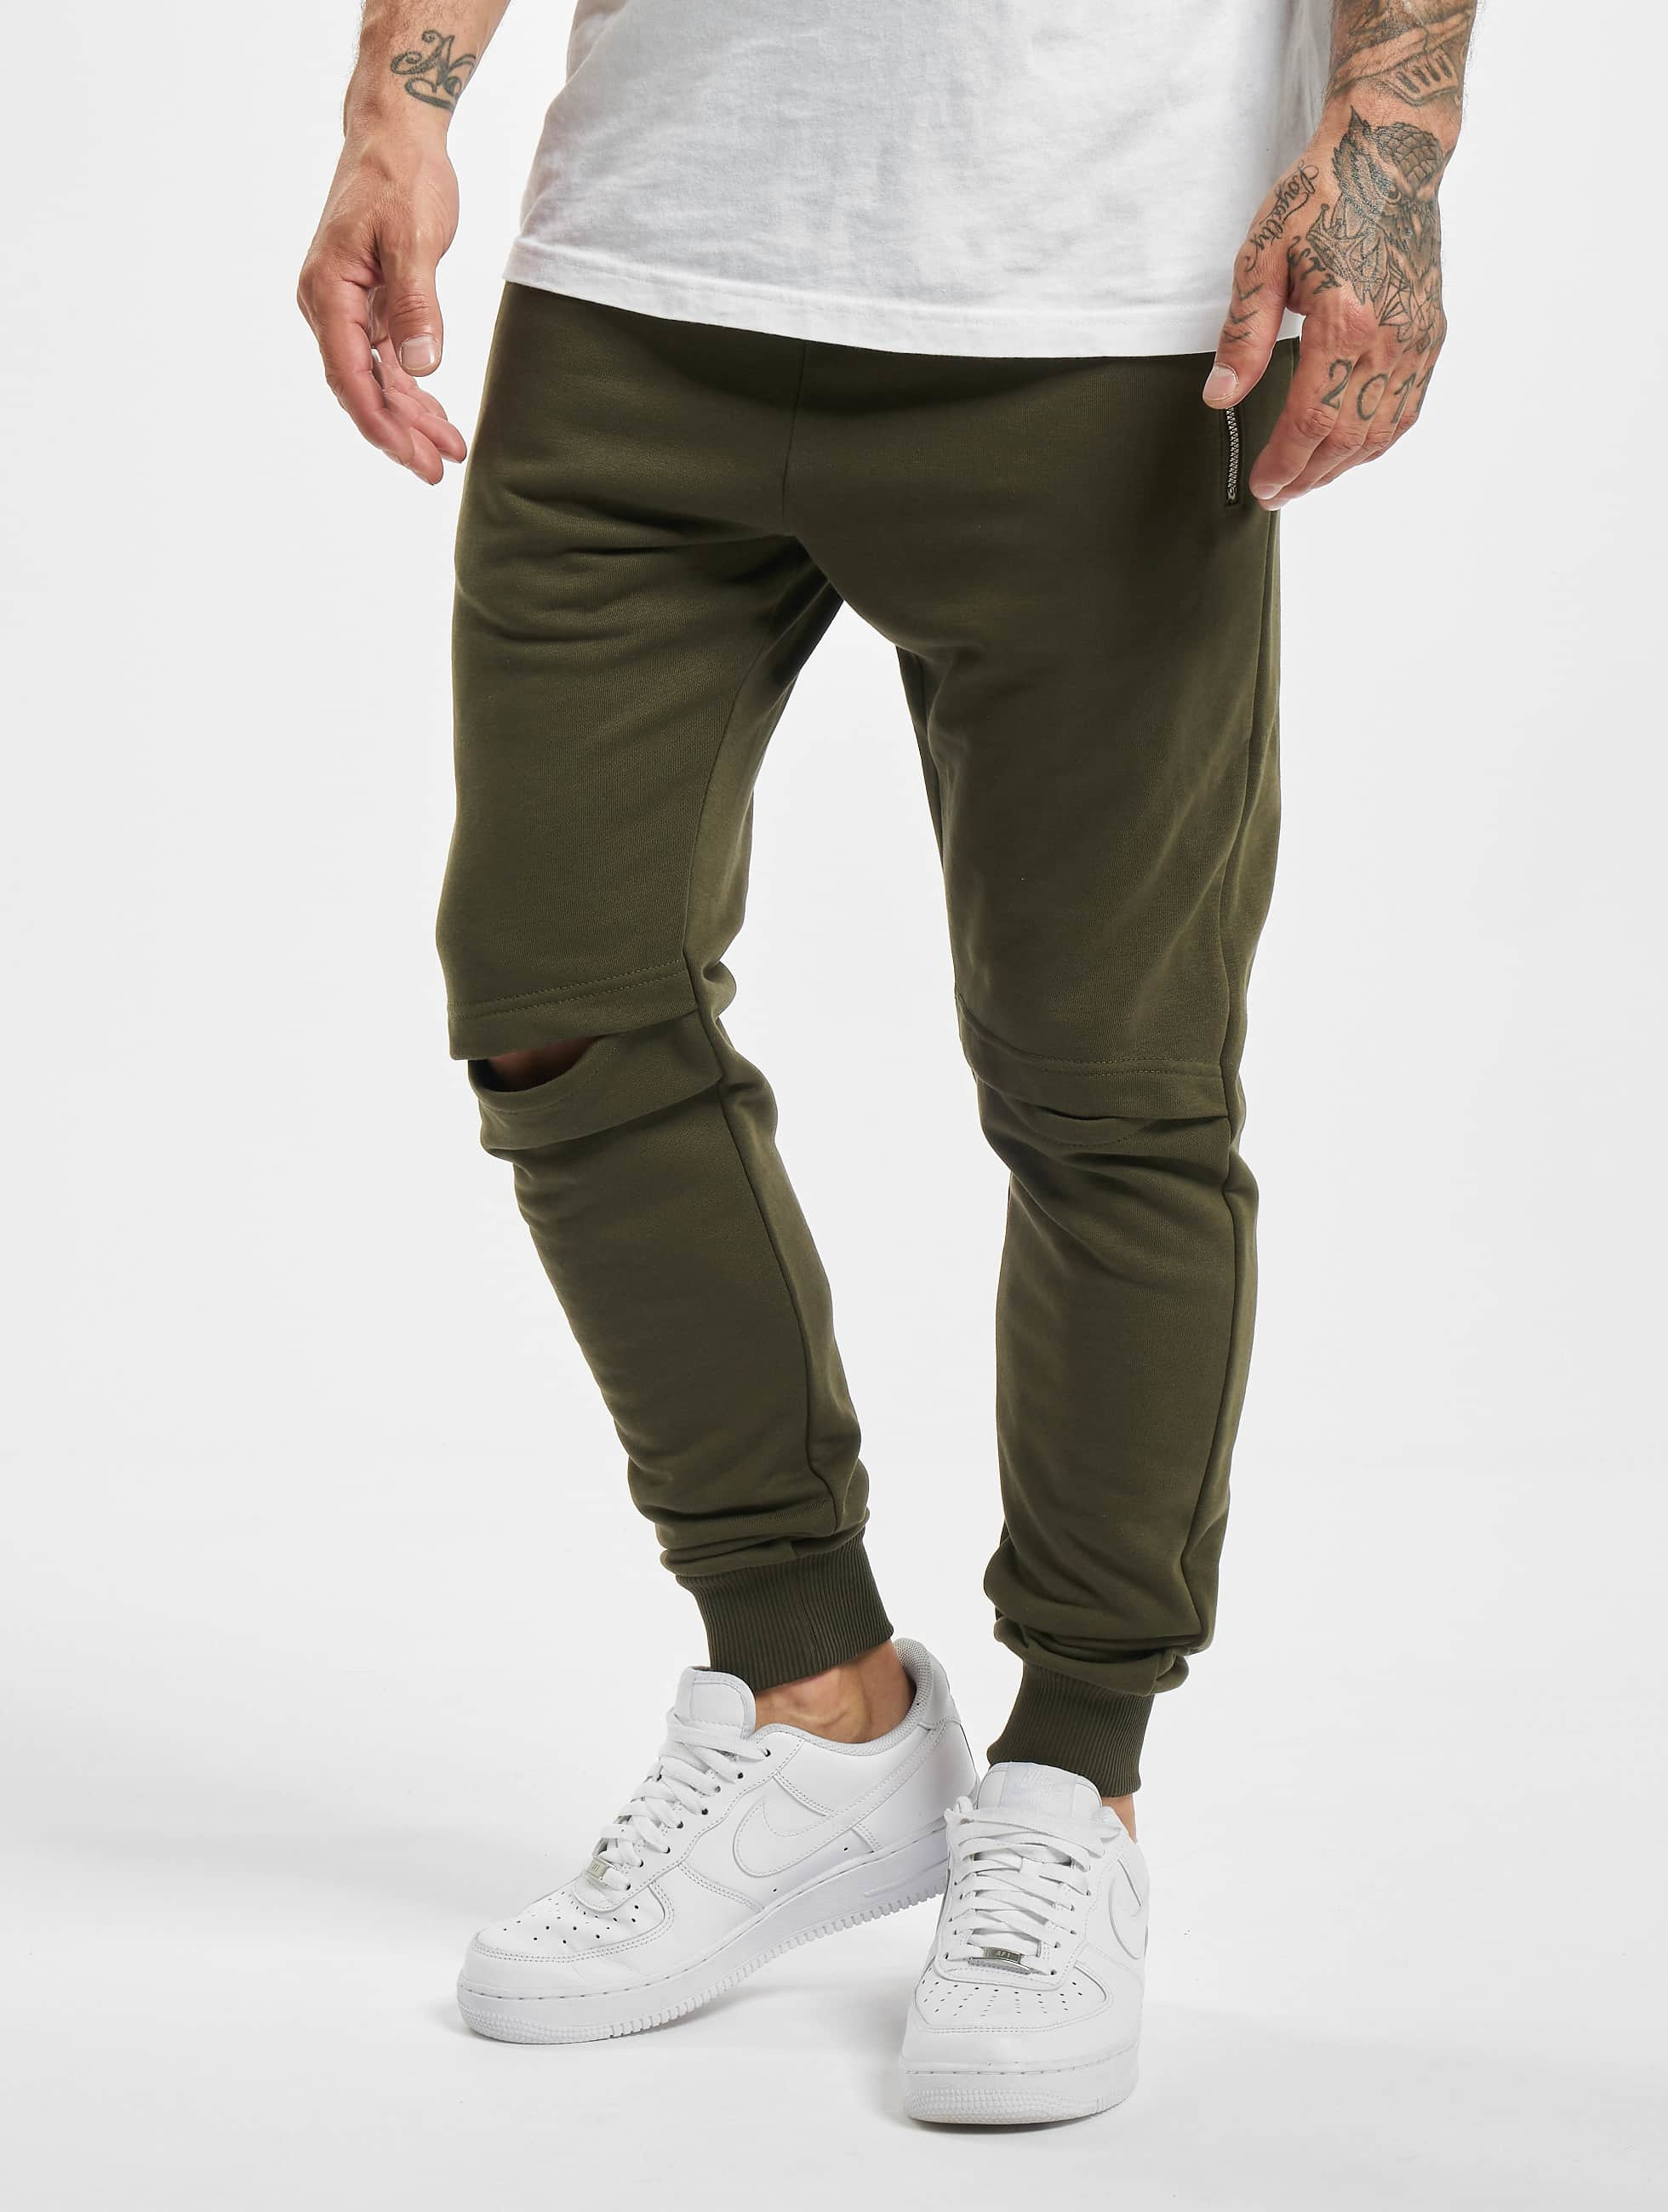 DEF / Sweat Pant Rider in olive L